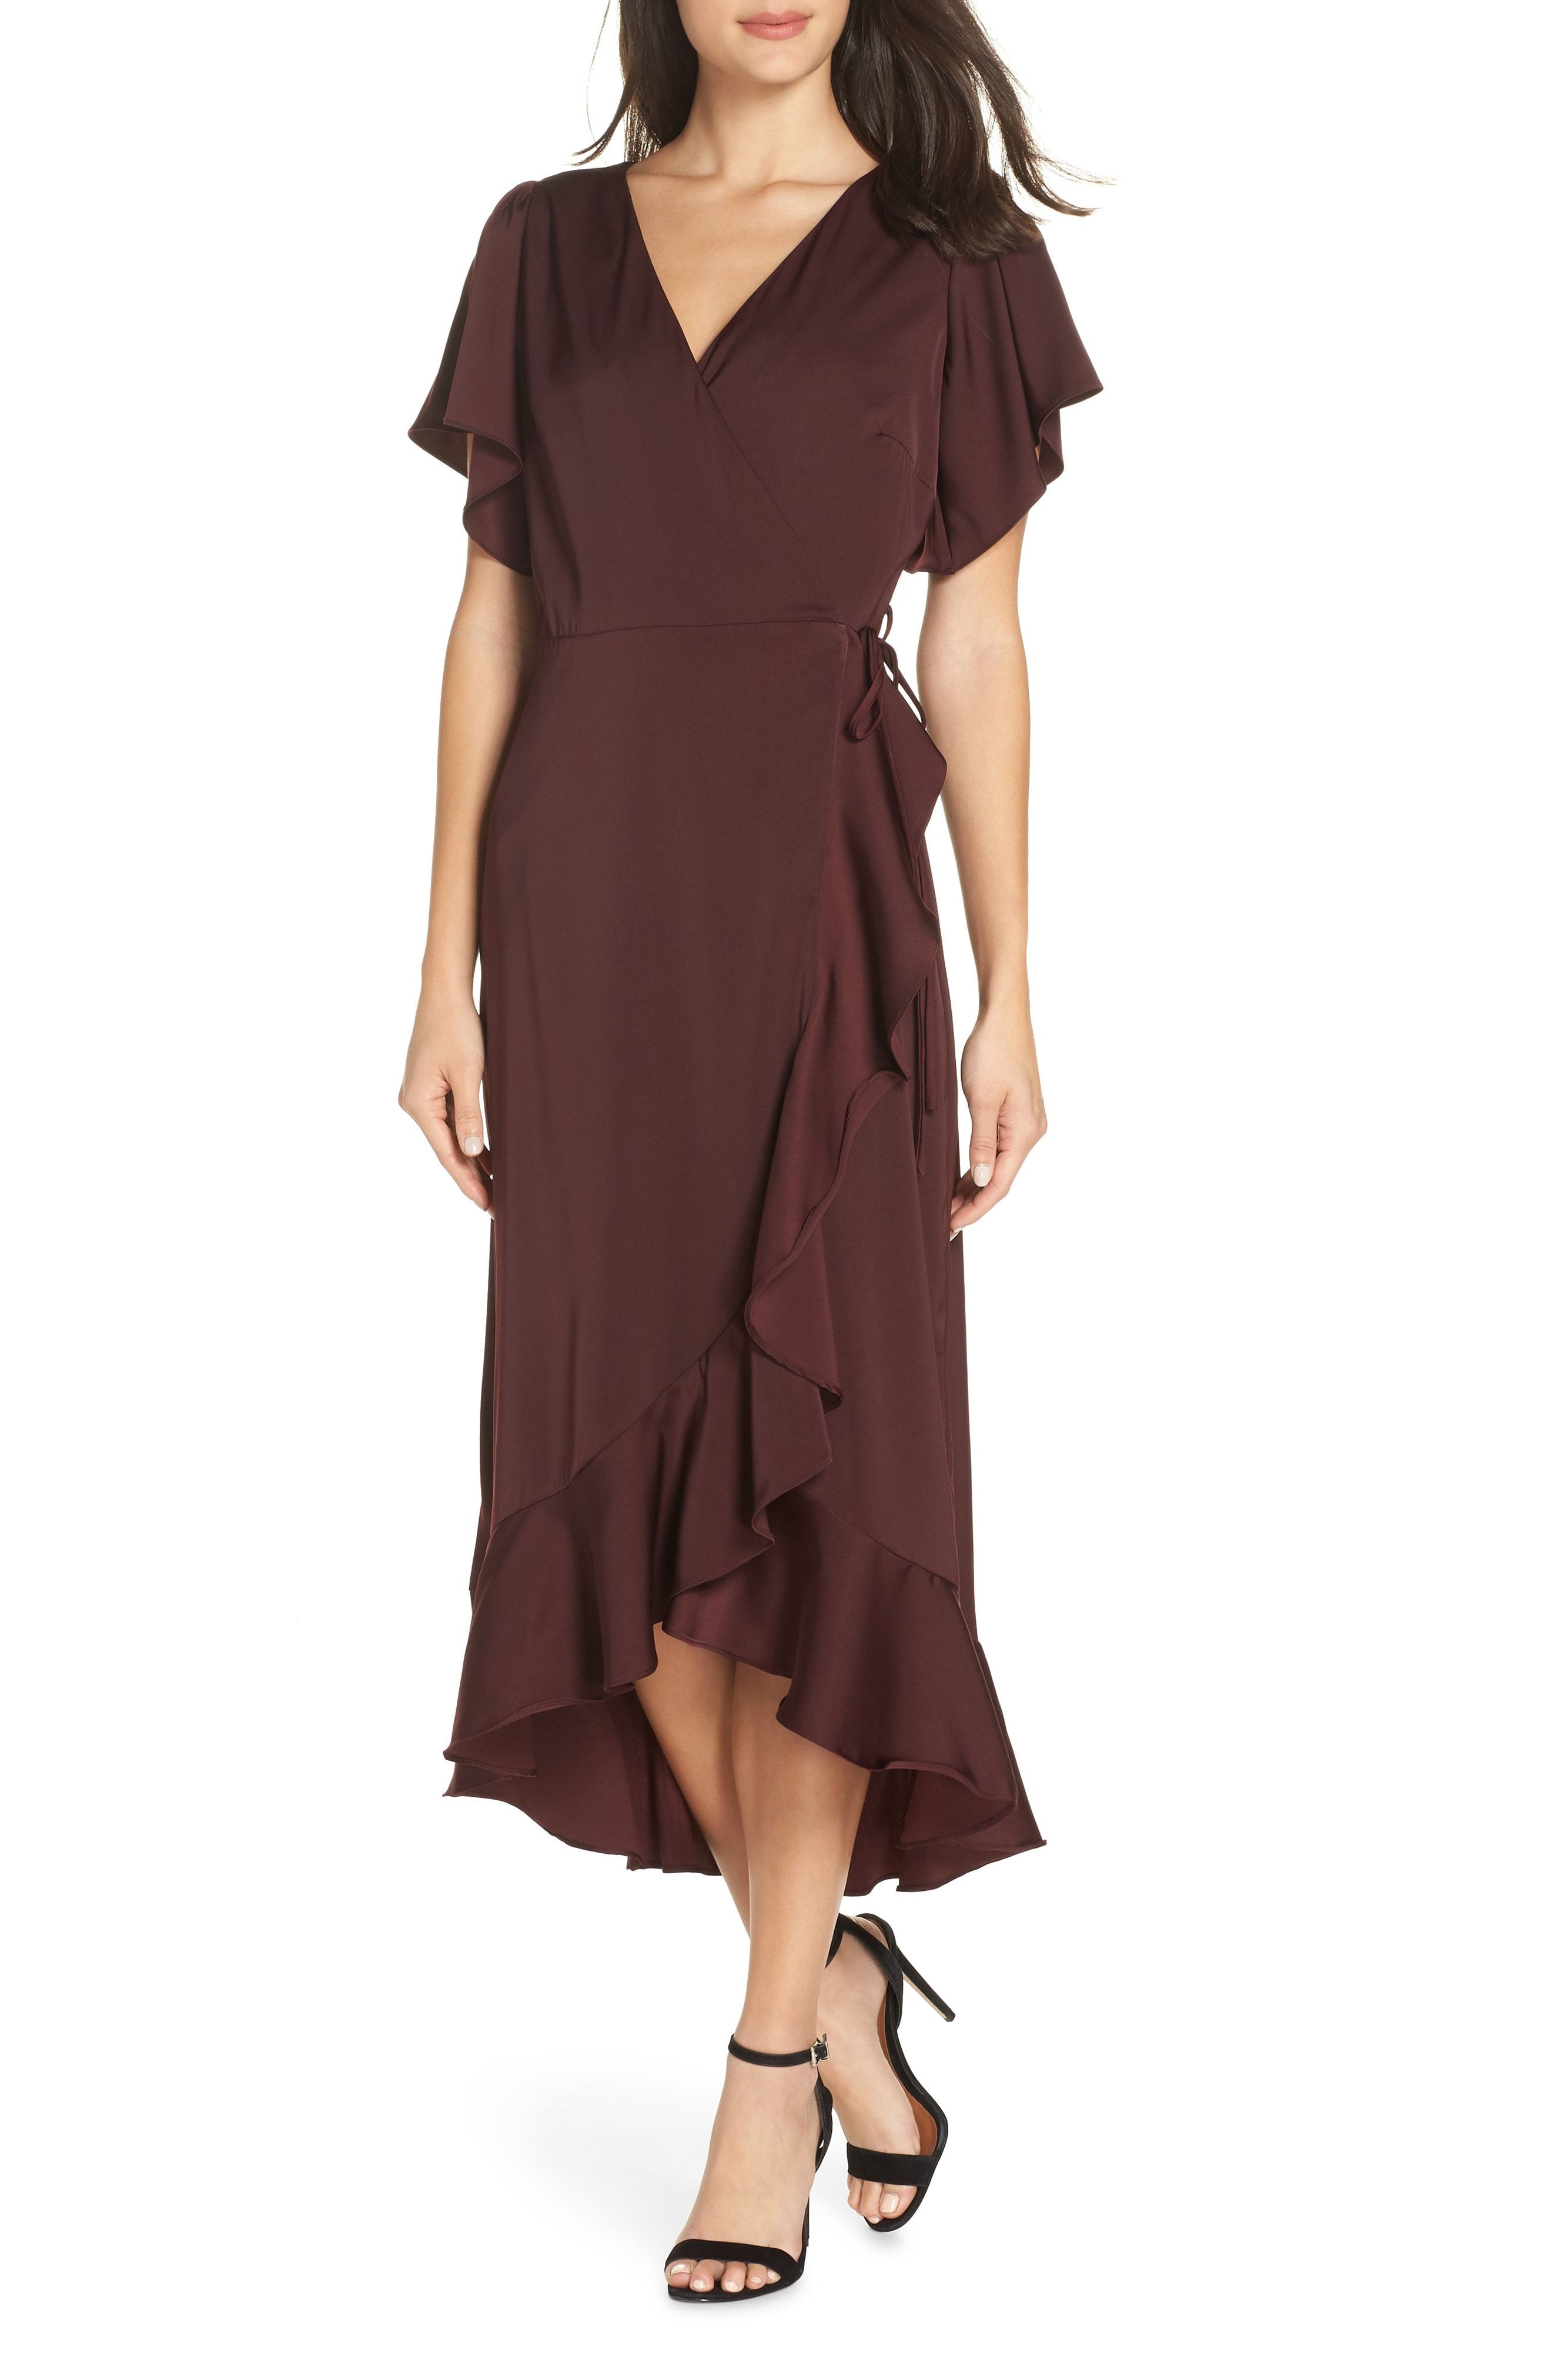 Fall Wedding Guest Dresses For Every Budget Wedding Guest Dress Long Simple Wedding G Trendy Cocktail Dresses Fashion Clothes Women Best Cocktail Dresses [ 4048 x 2640 Pixel ]